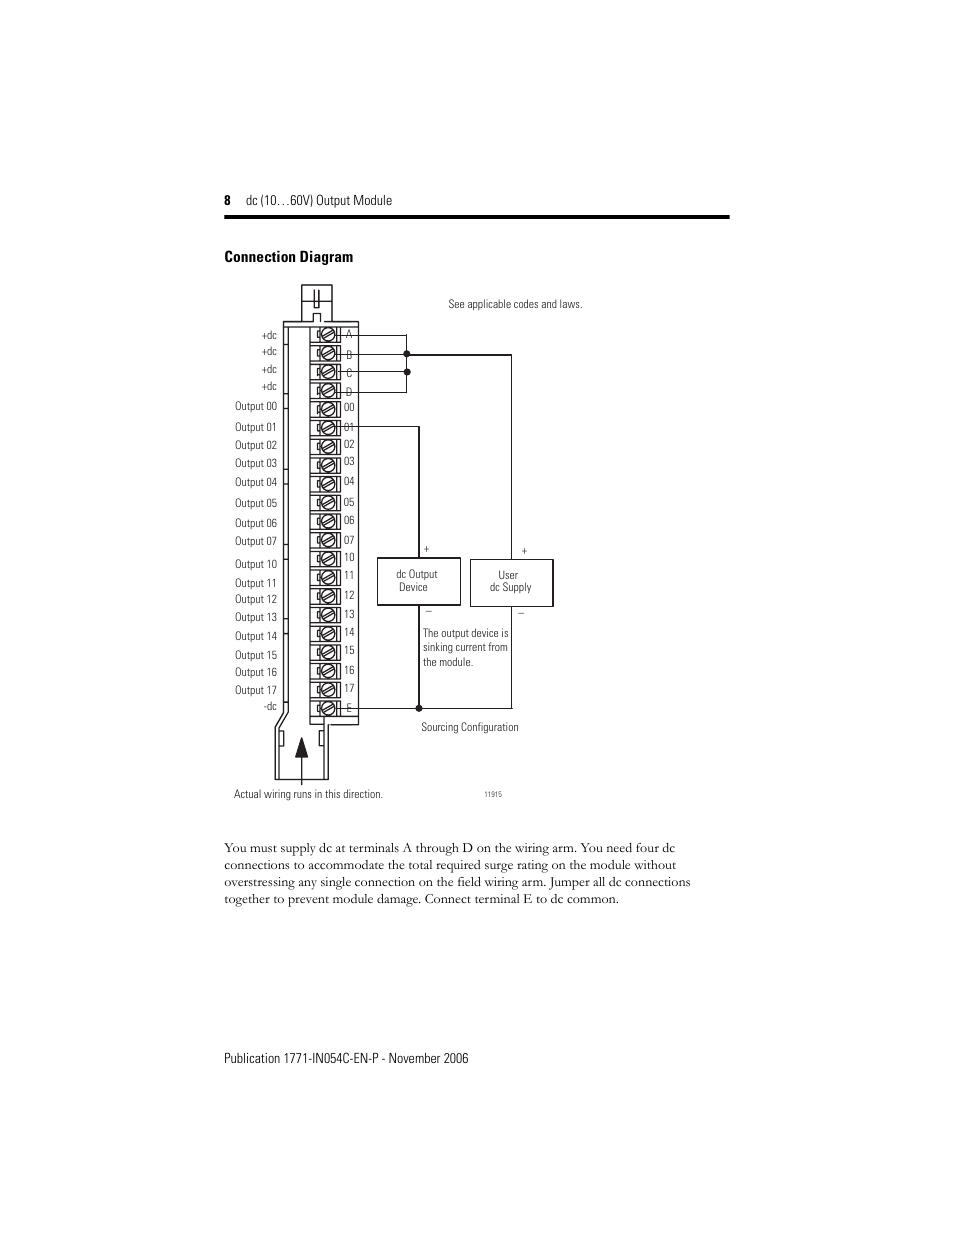 hight resolution of connection diagram rockwell automation 1771 obd series c instl instr dc 10 60v output user manual page 8 20